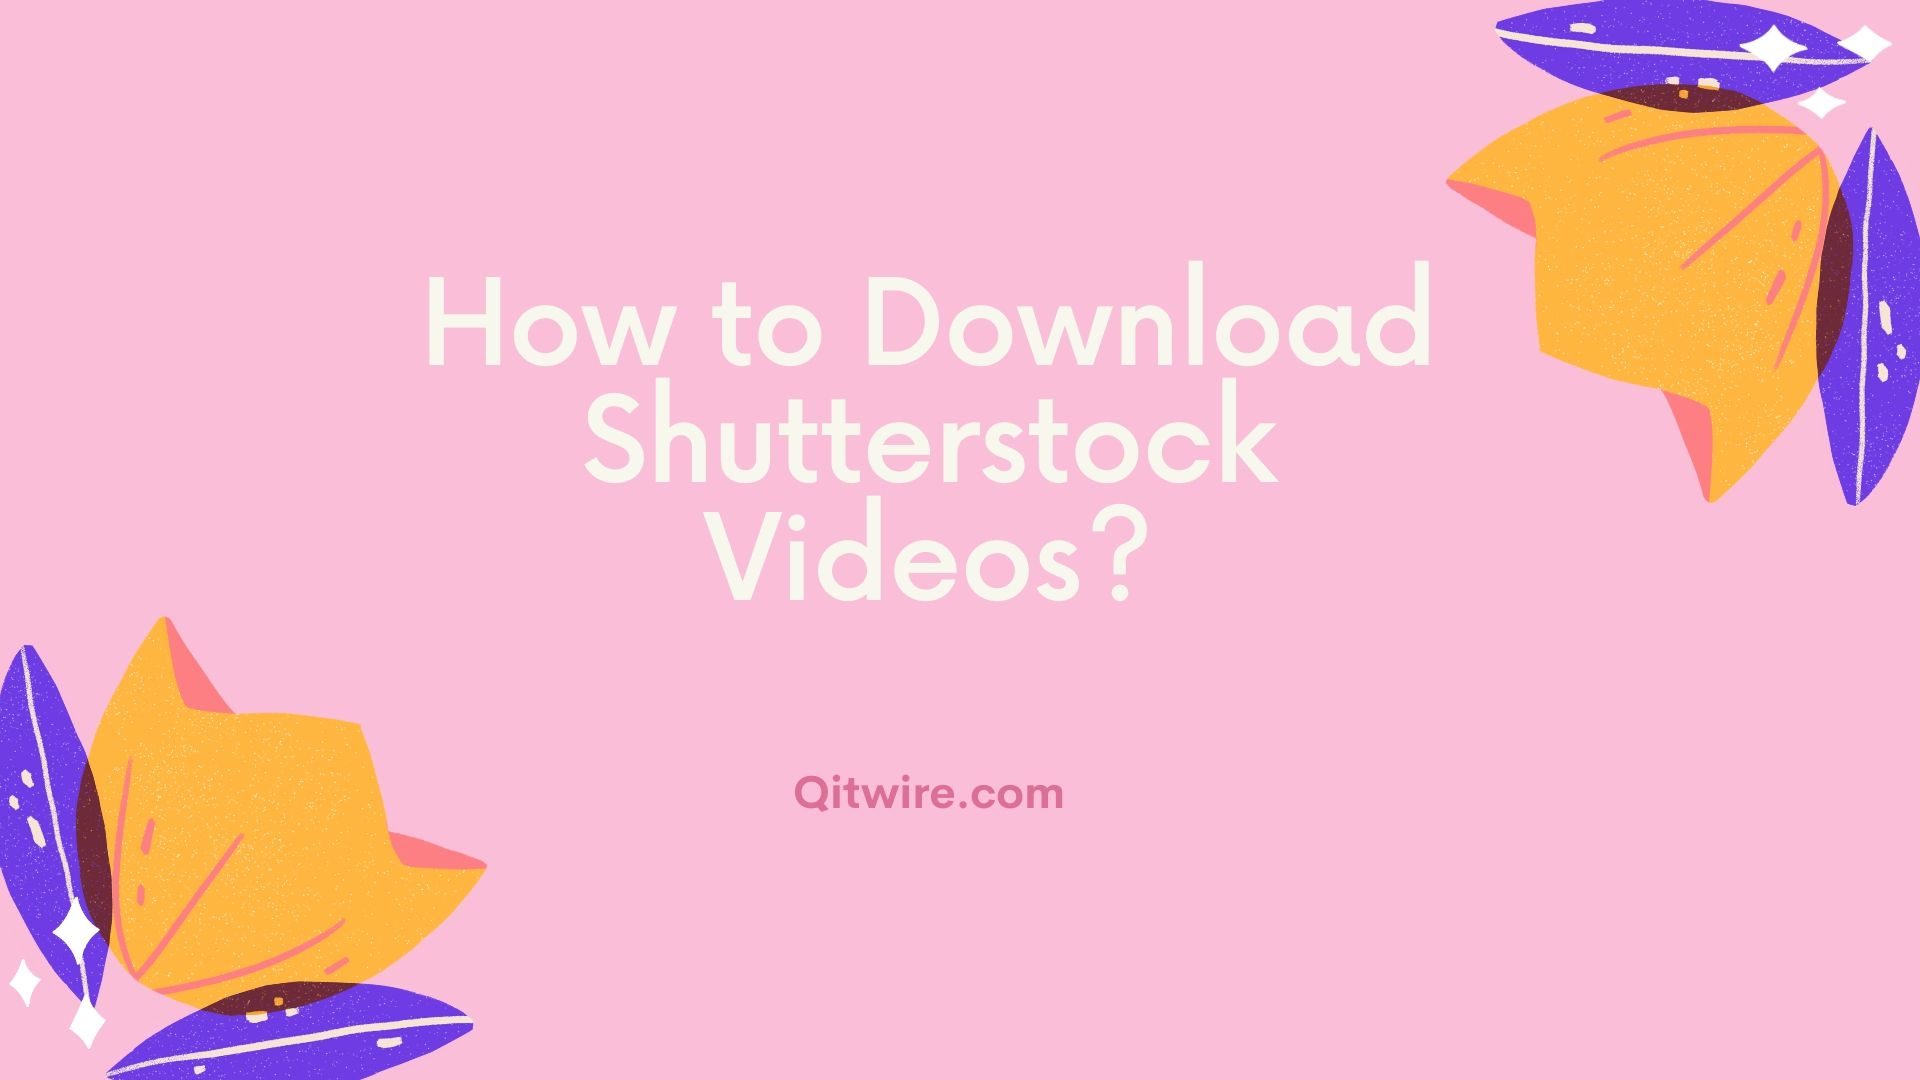 How to Download Shutterstock Videos